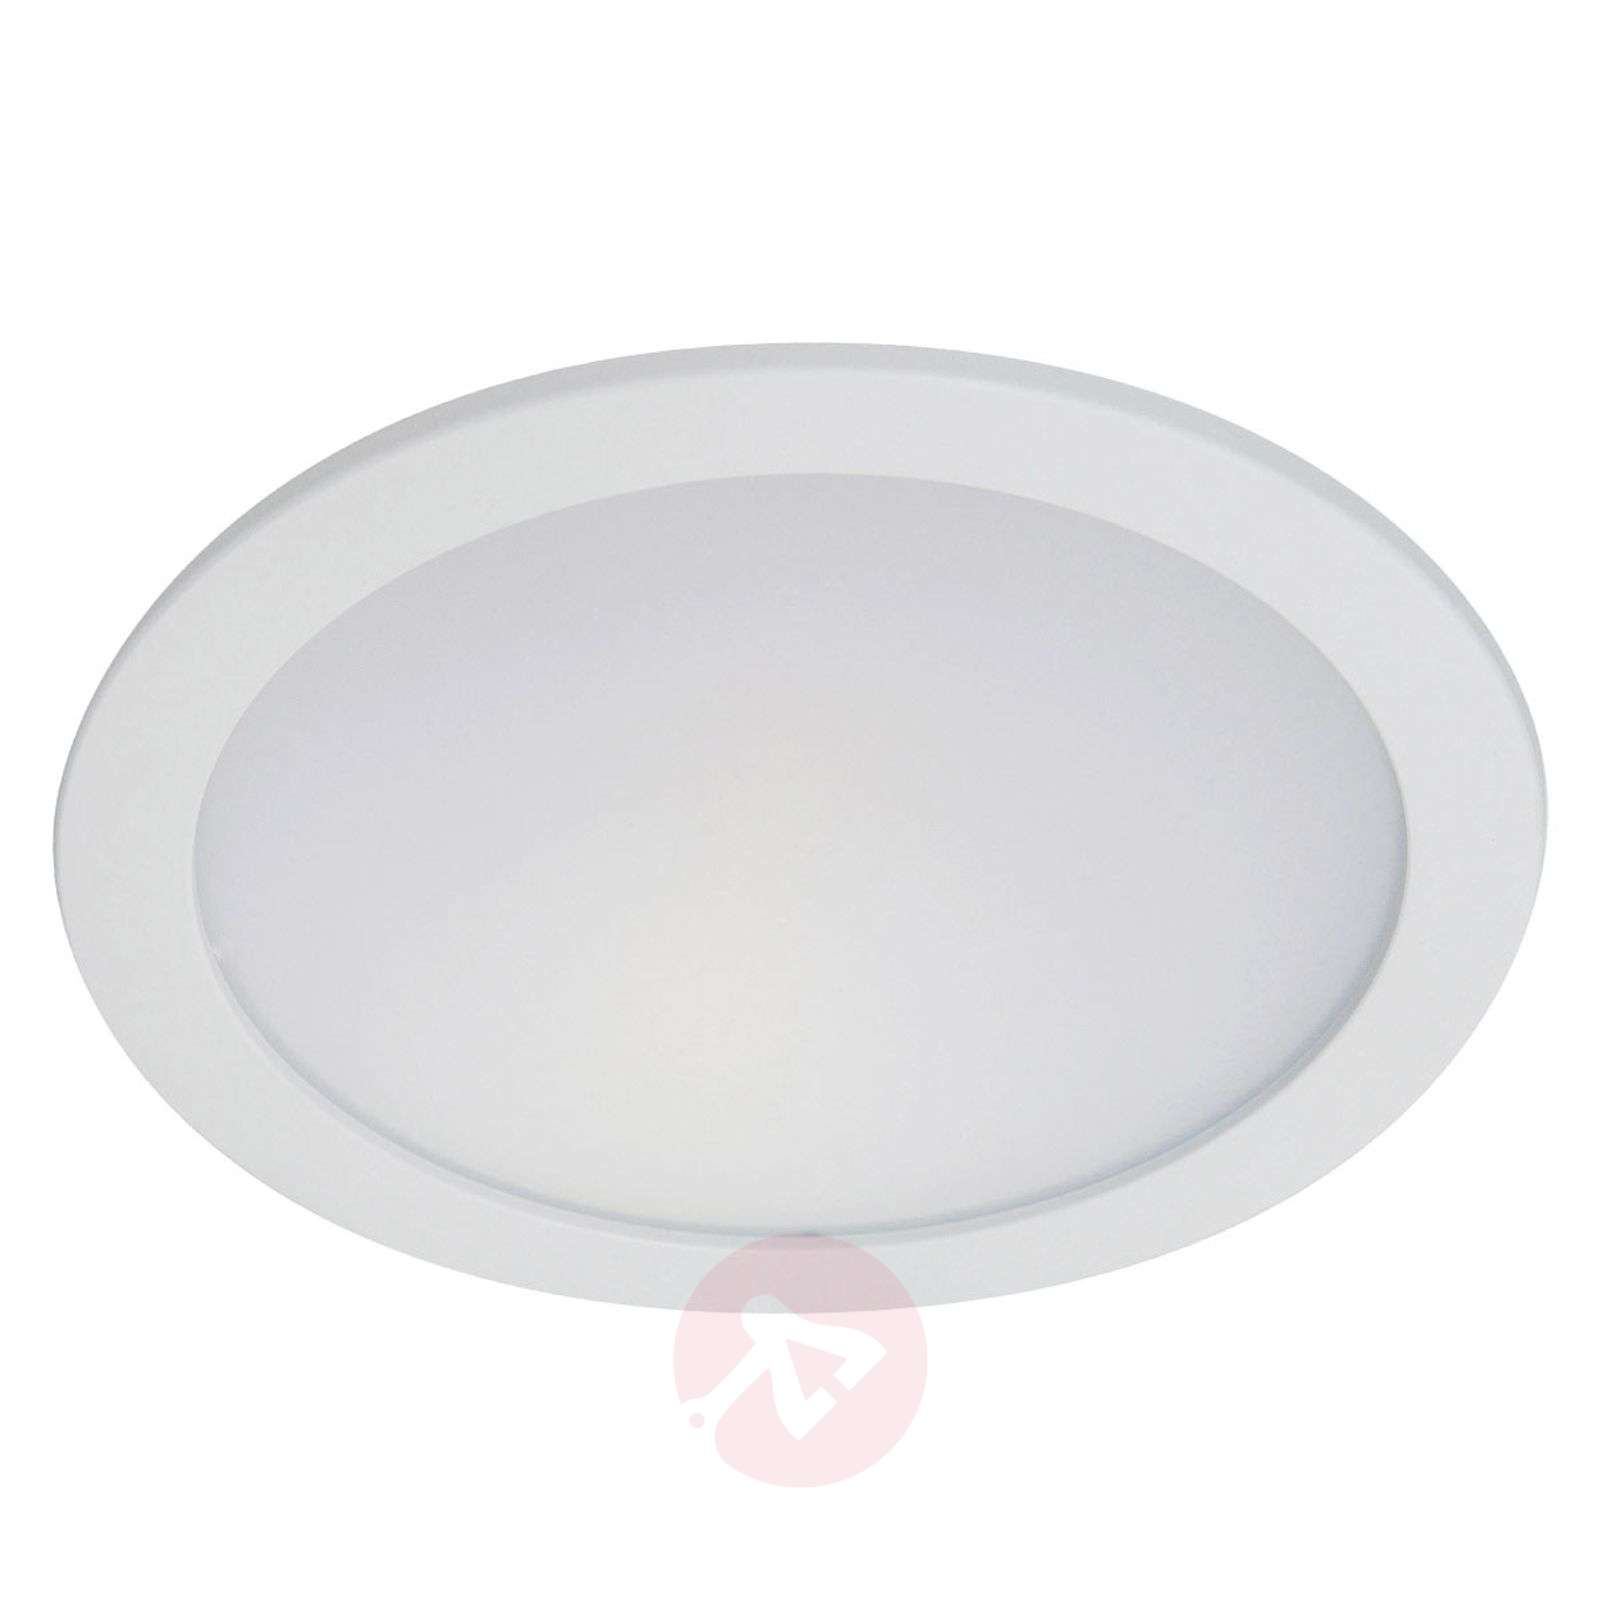 Lampe encastrable LED ronde Hony 35 W-6523764X-01